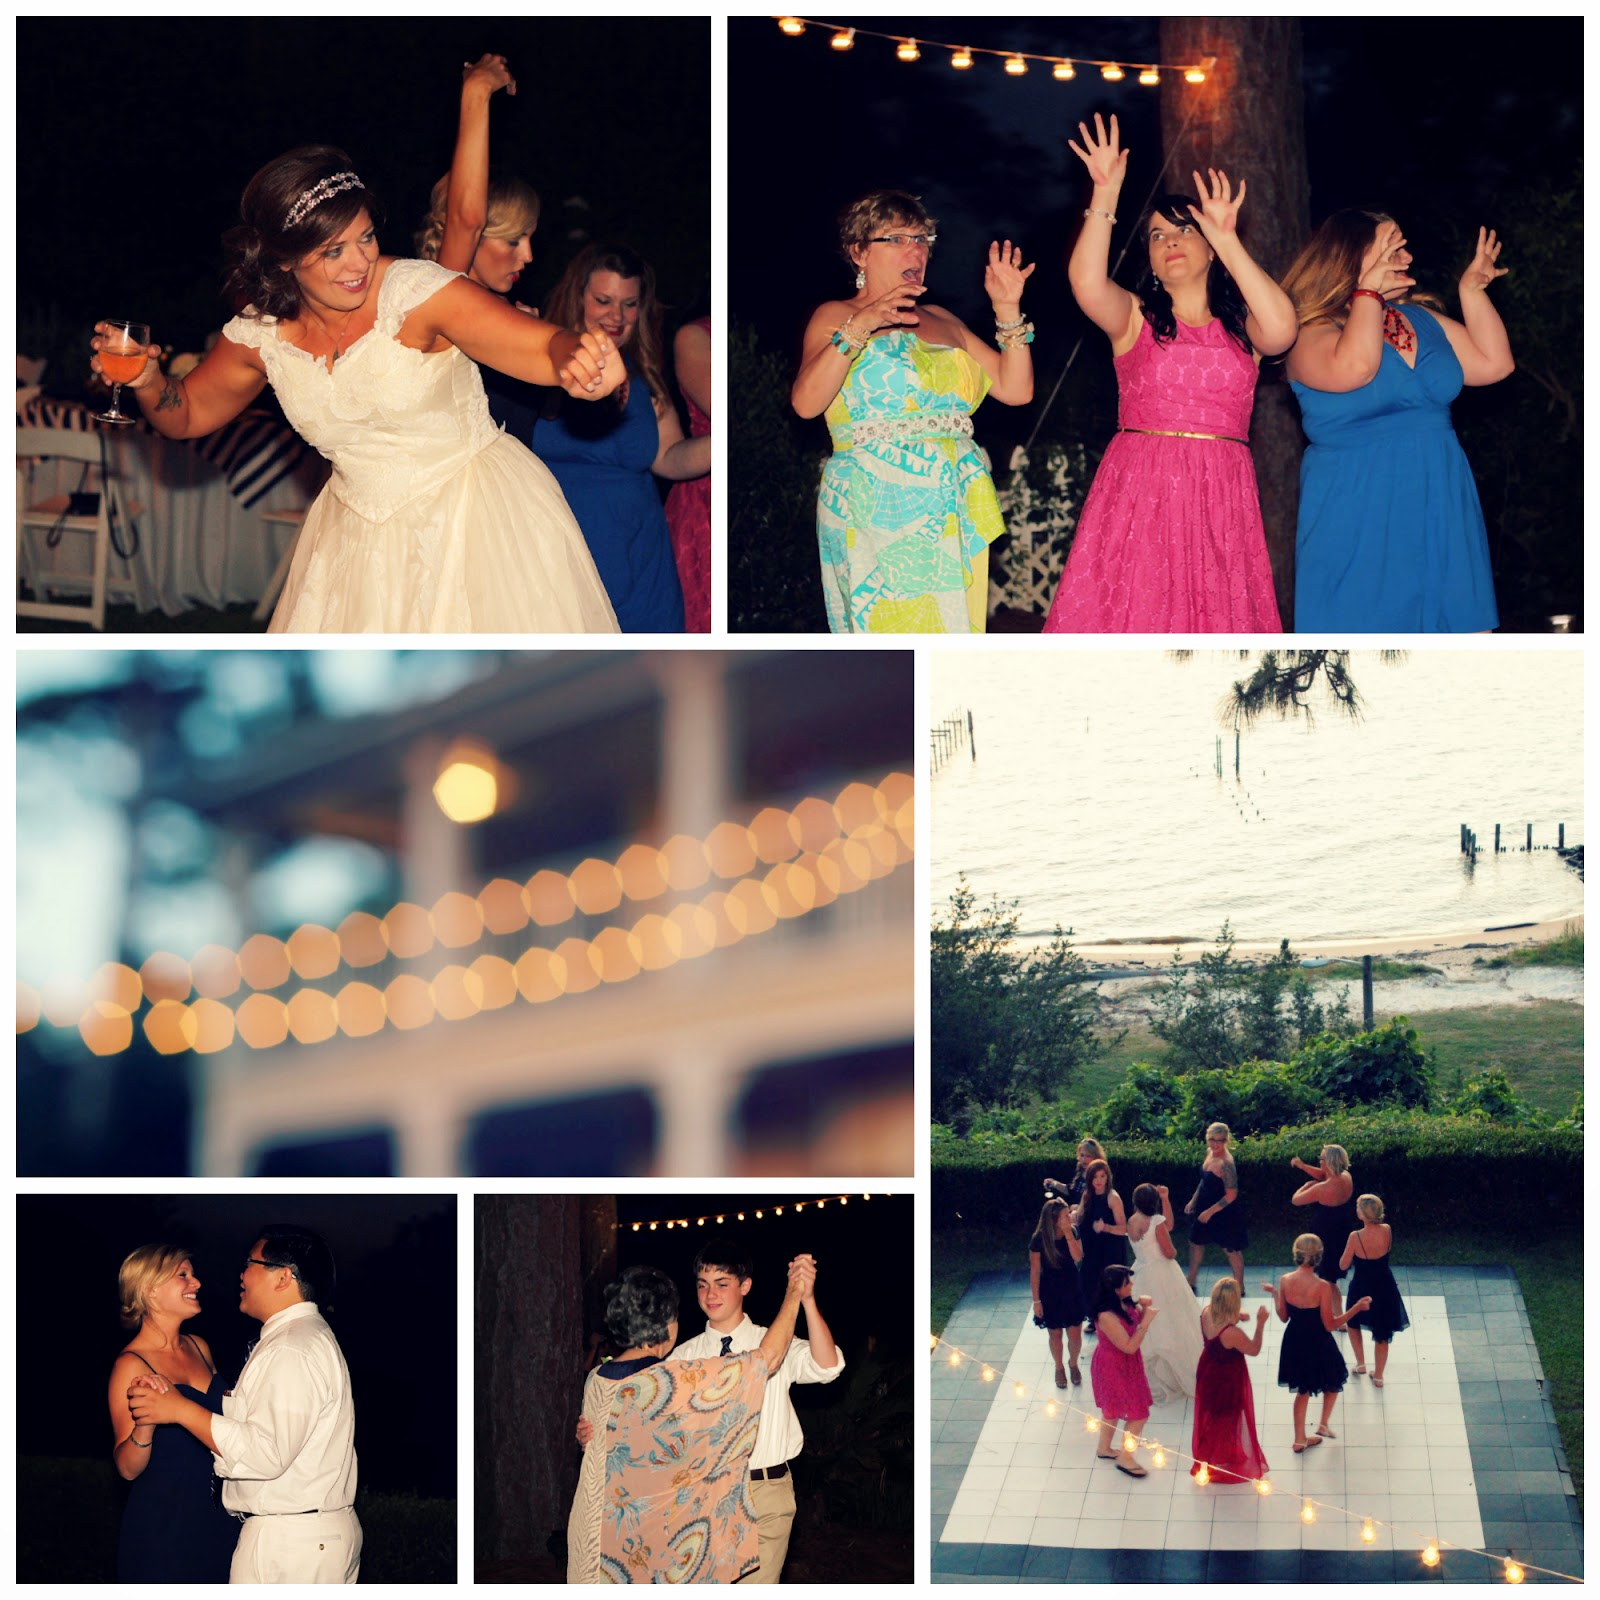 T&C+dancing+collage.jpg